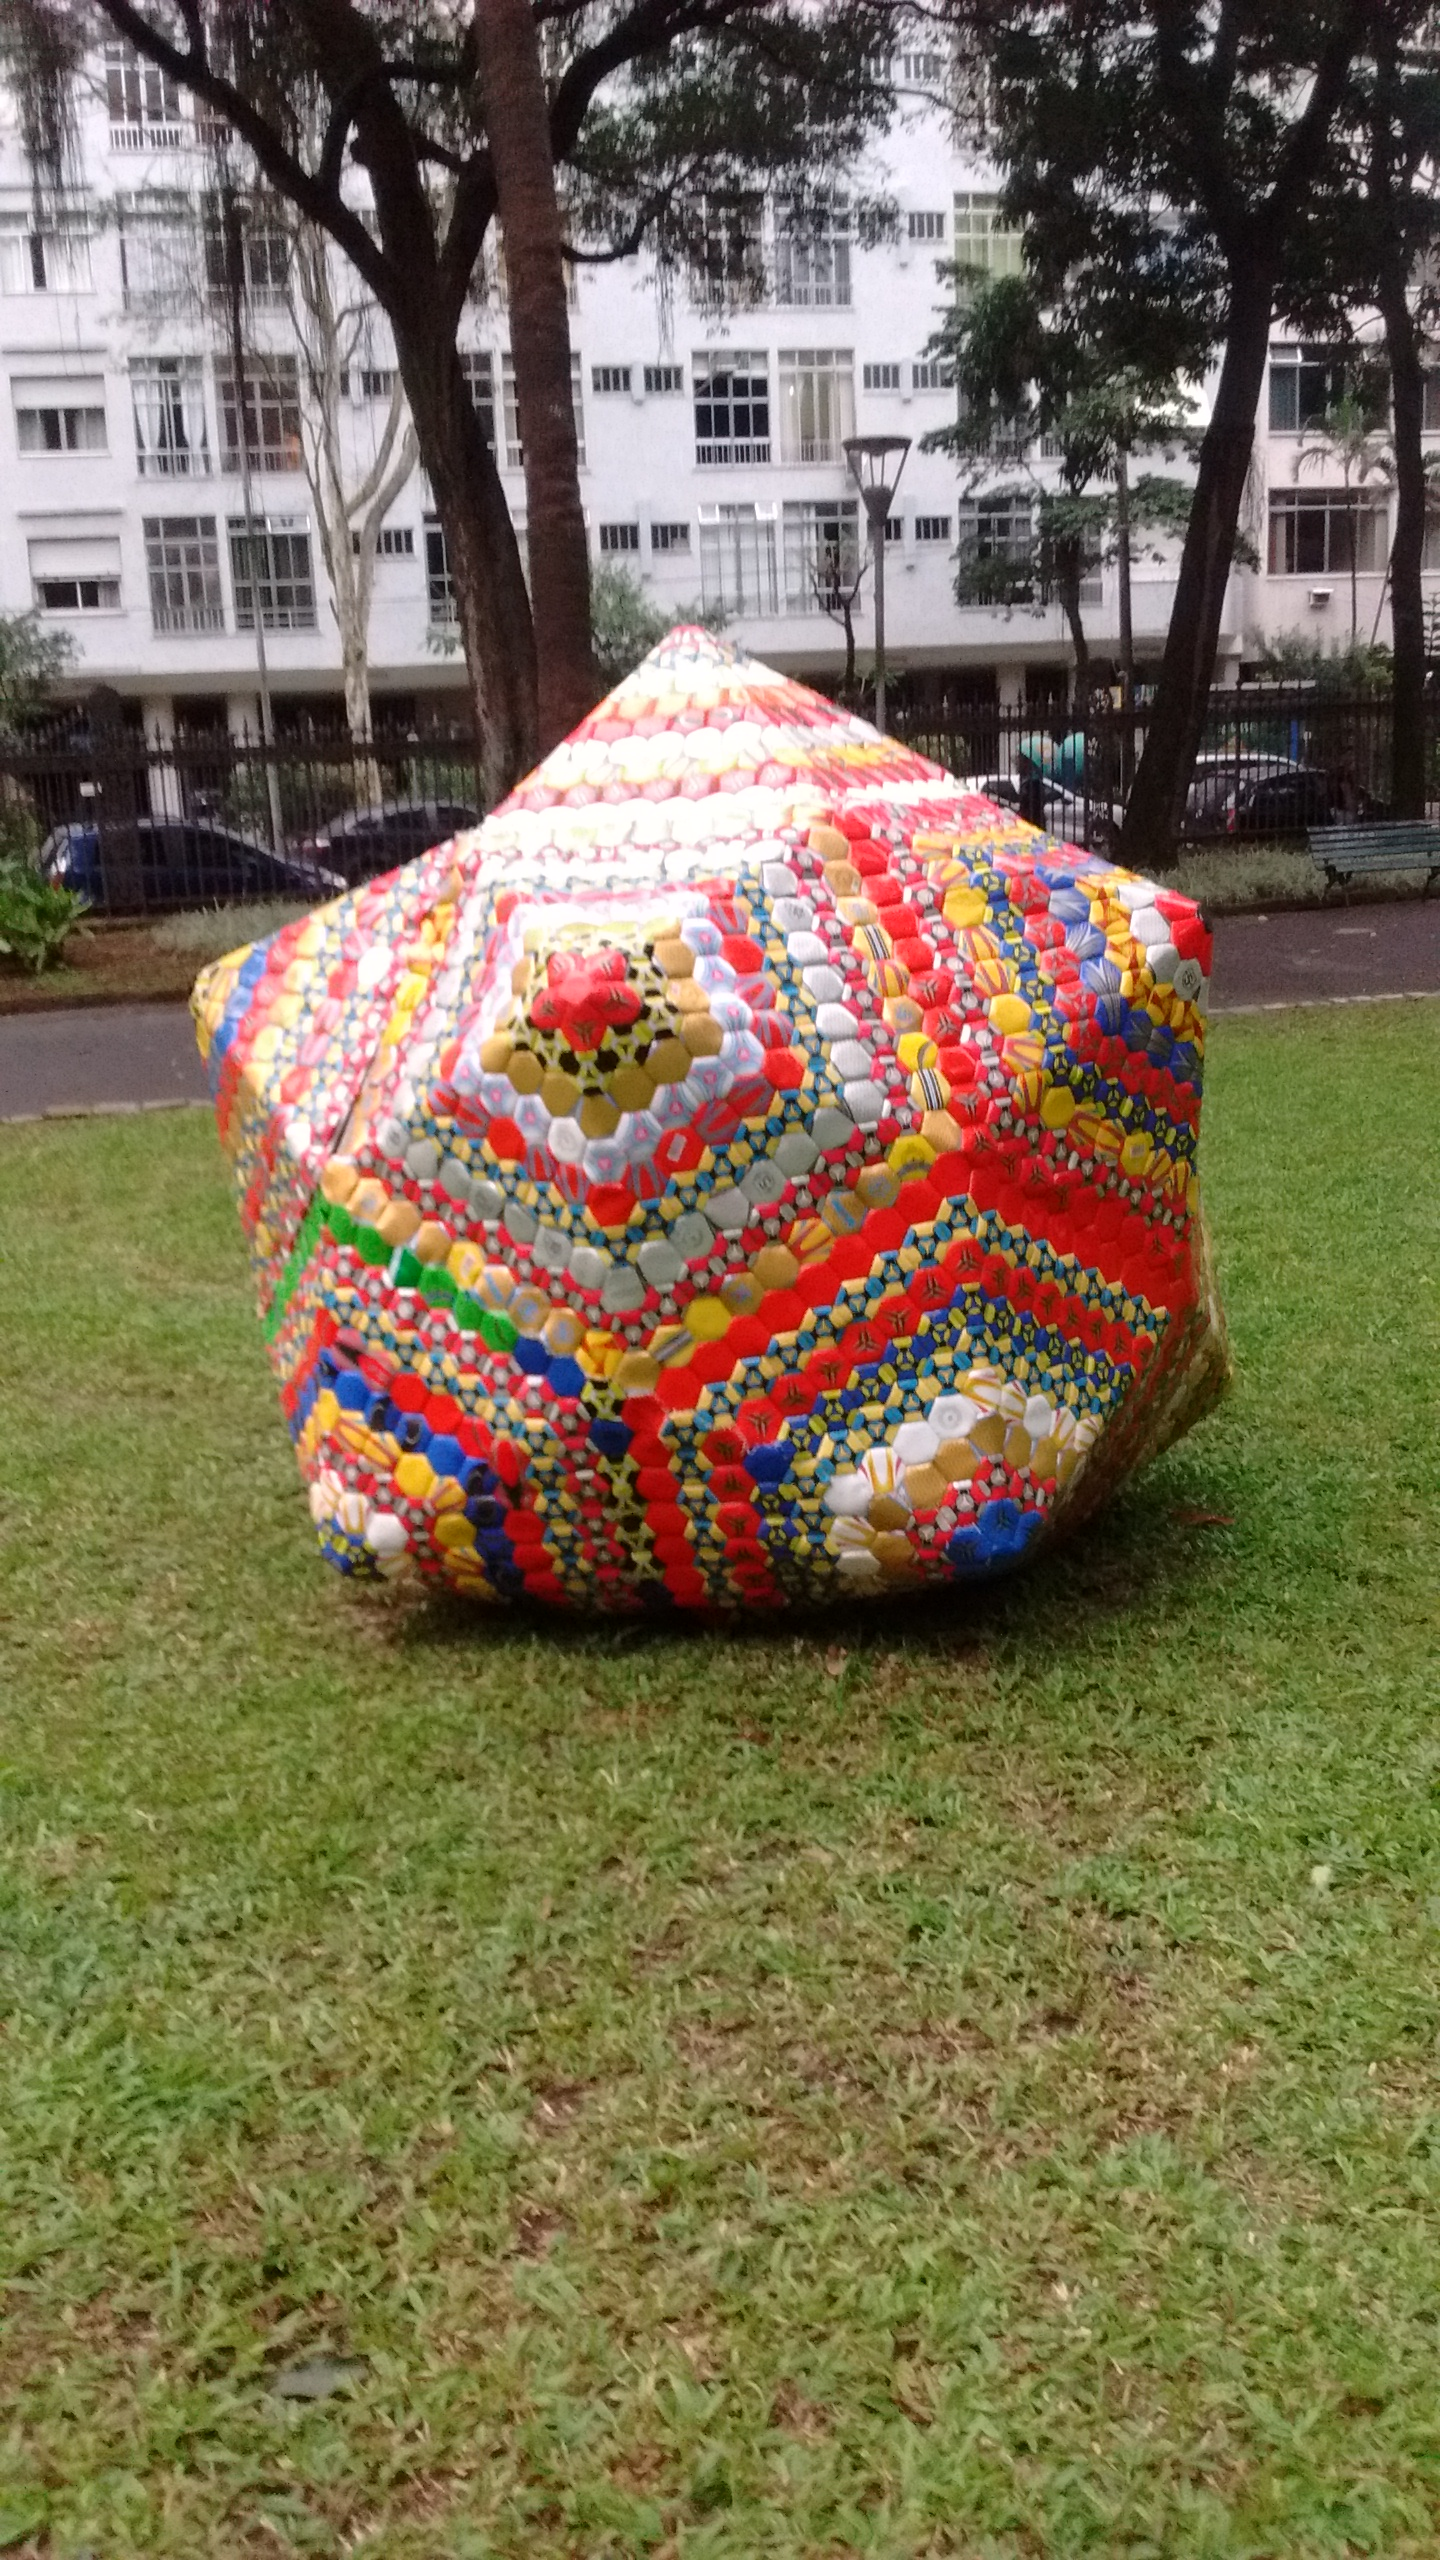 Giant soccer ball made from soccer balls at the botanical gardens